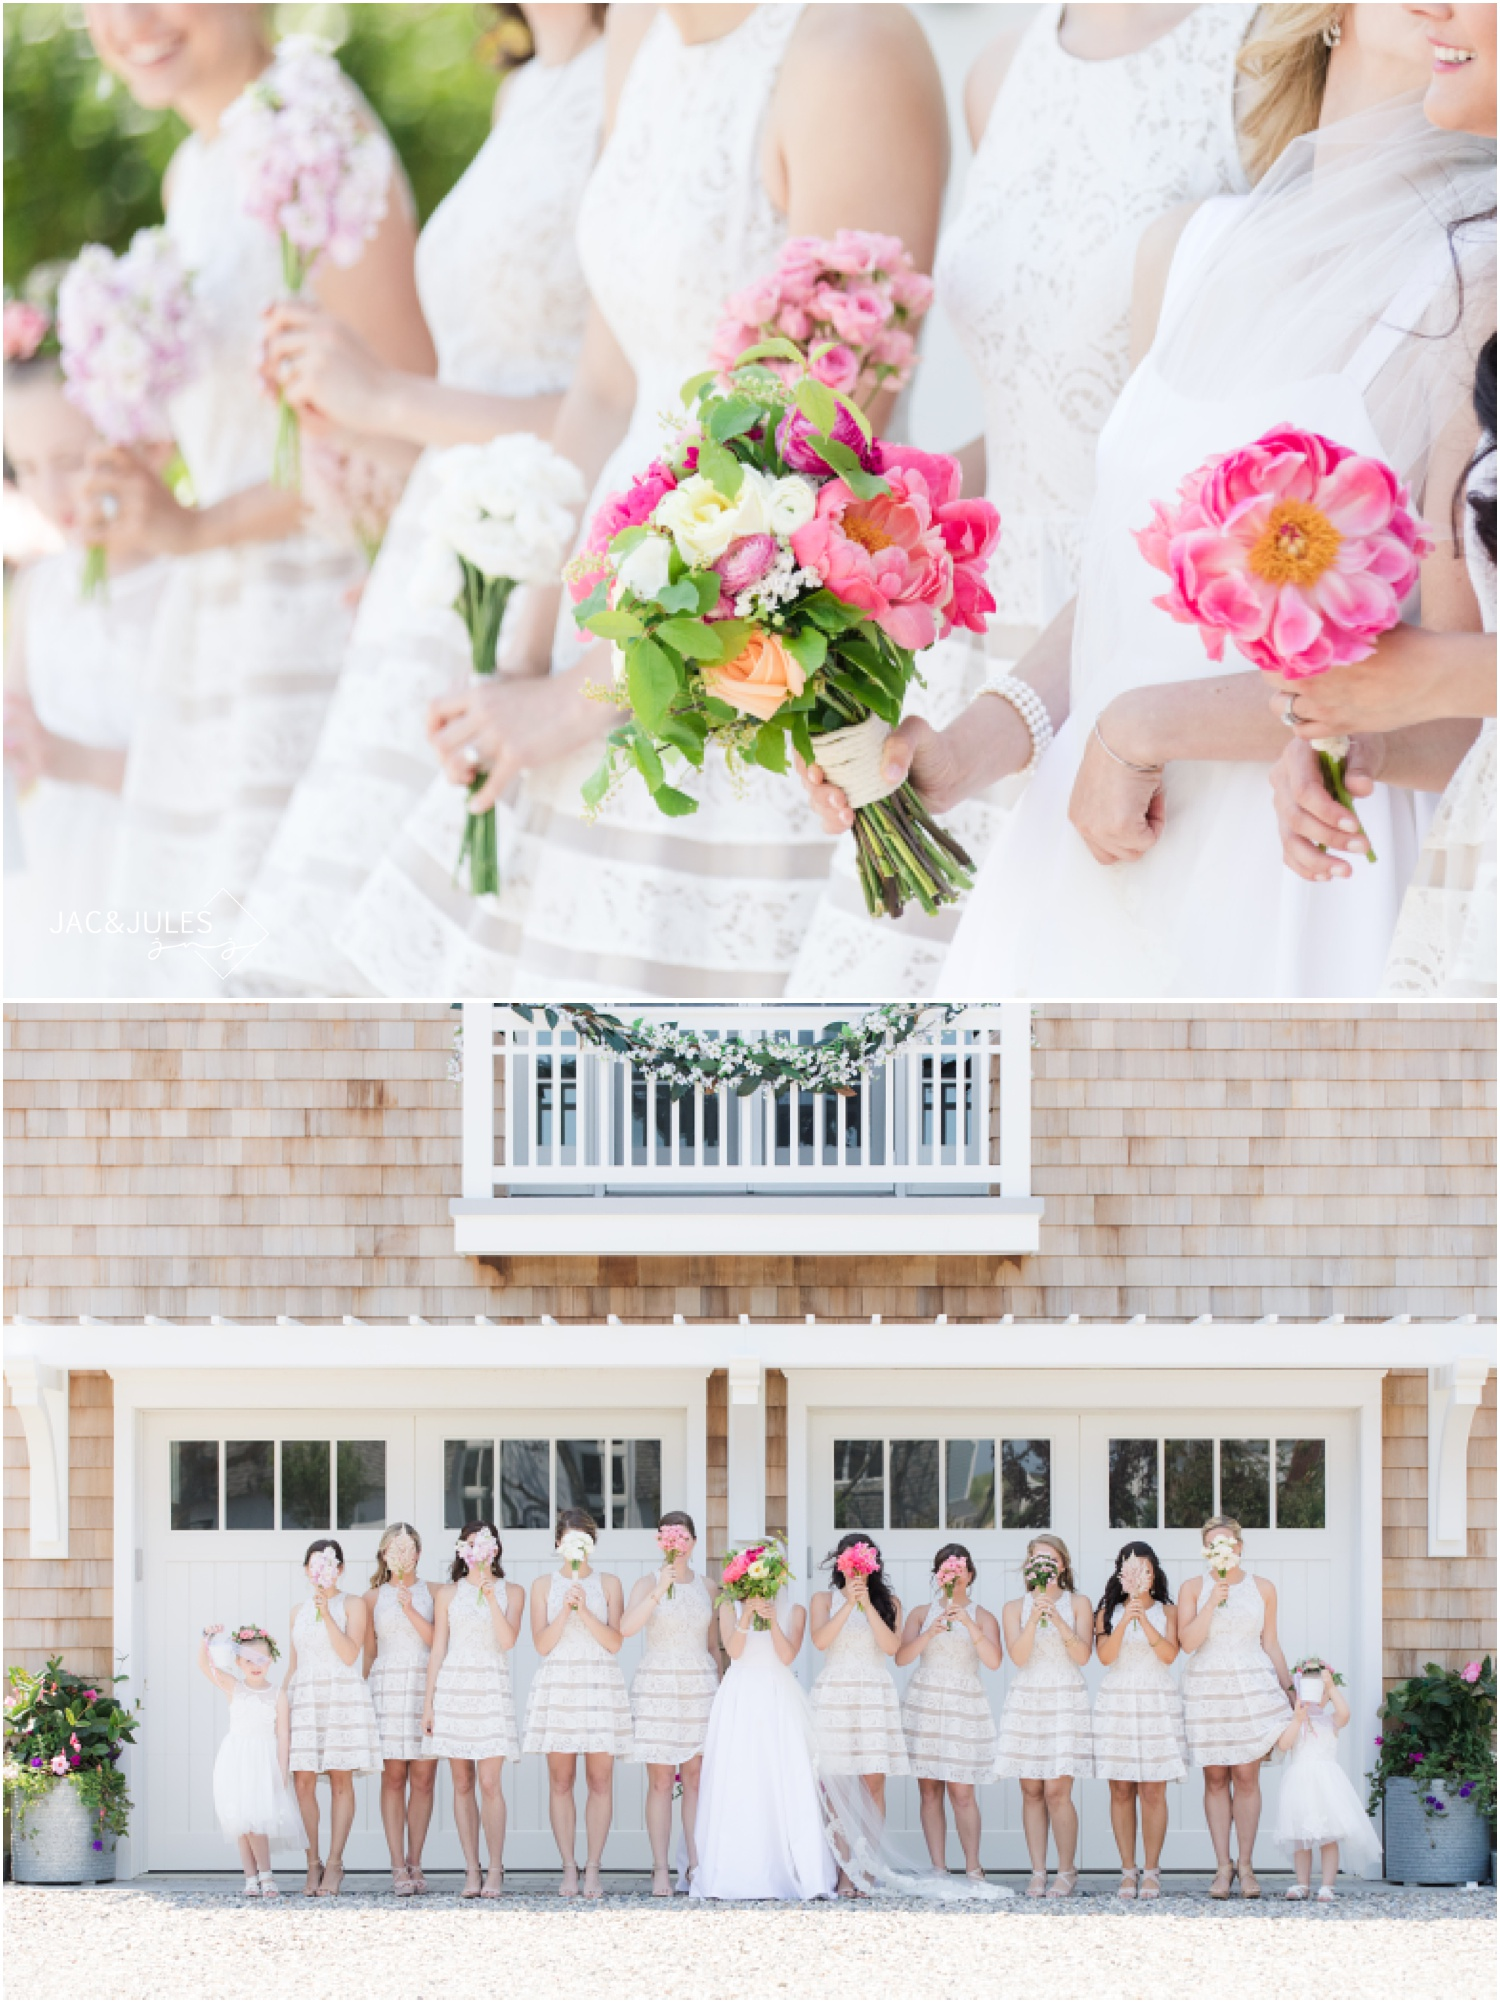 Unique bridal and brides maids bouquets and a silly bridesmaids photo outside Mantoloking, NJ home.